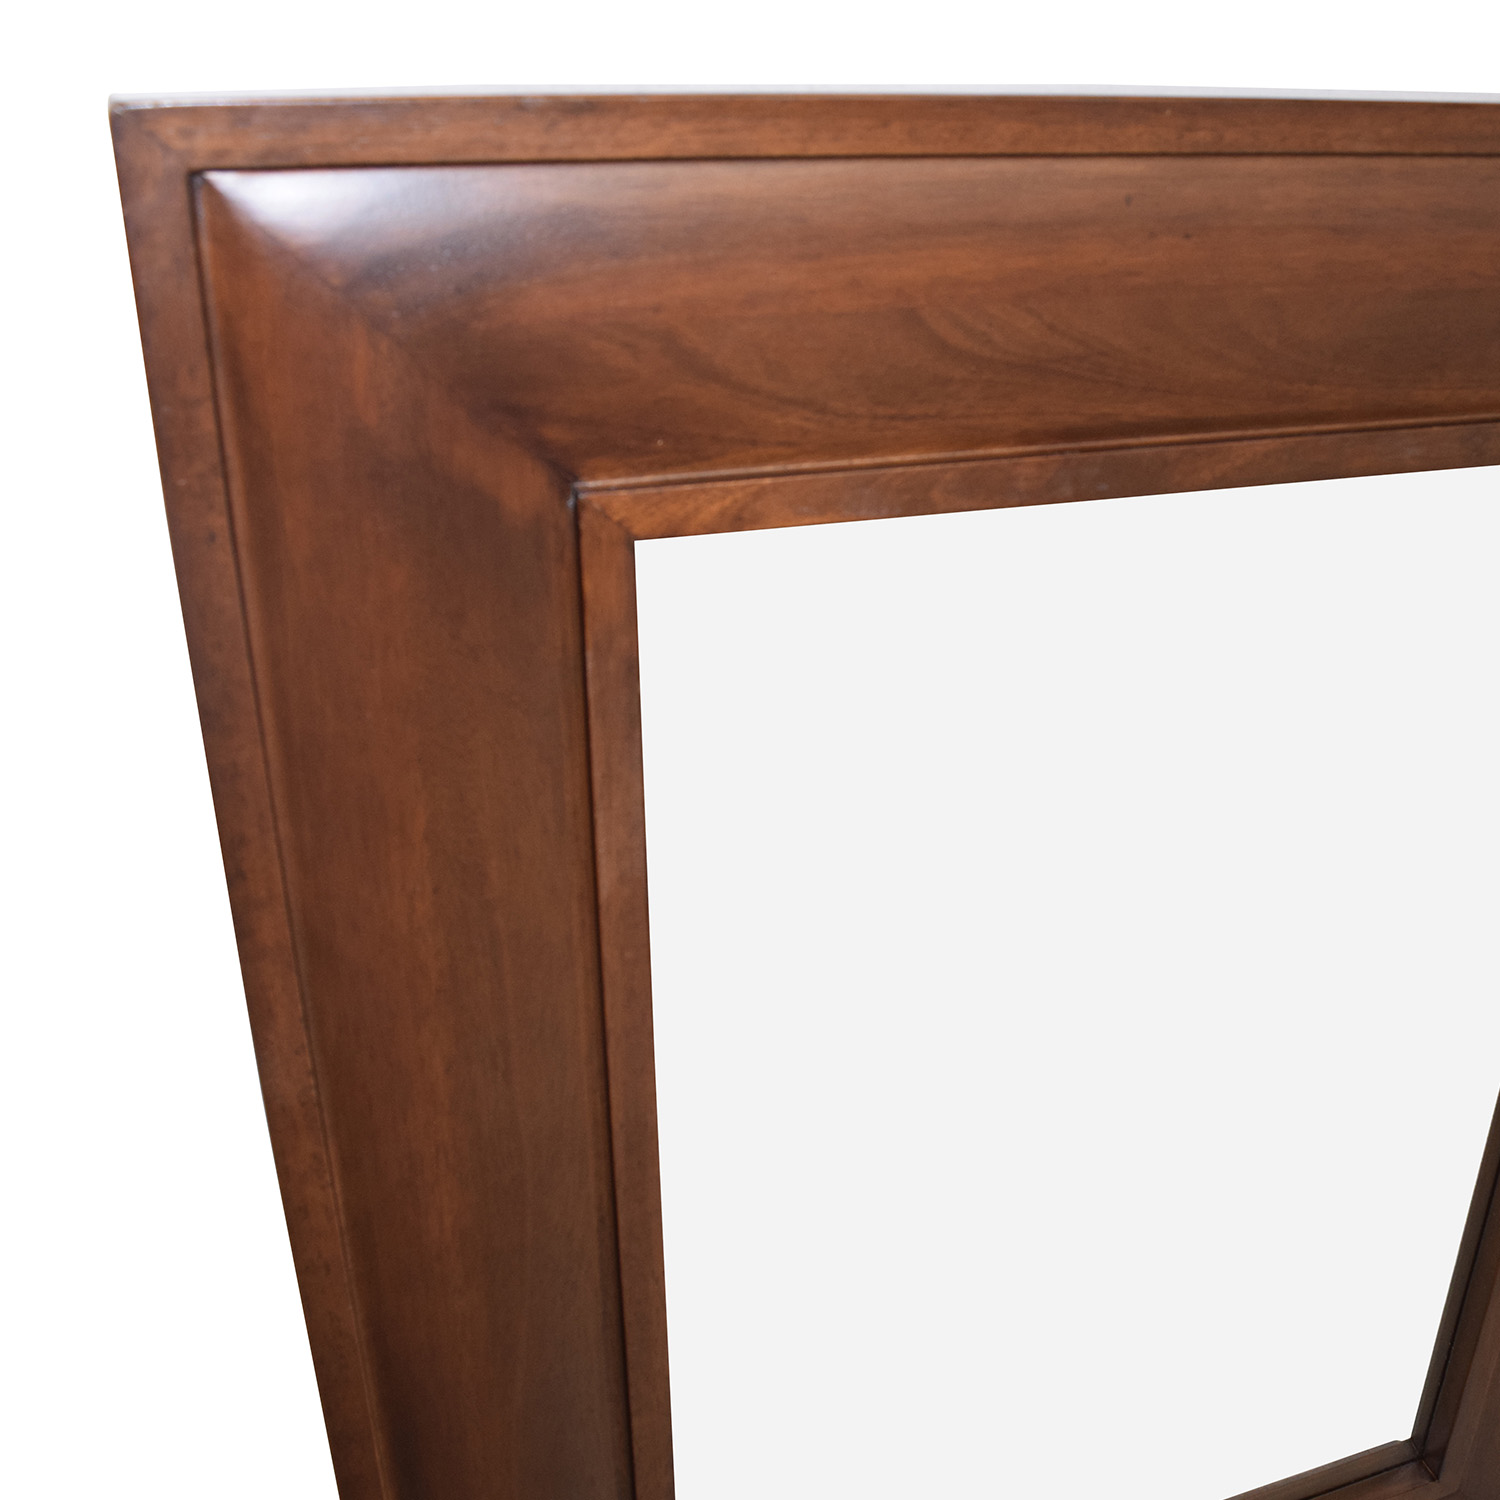 shop pottery barn wood framed mirror pottery barn - Wood Framed Mirrors